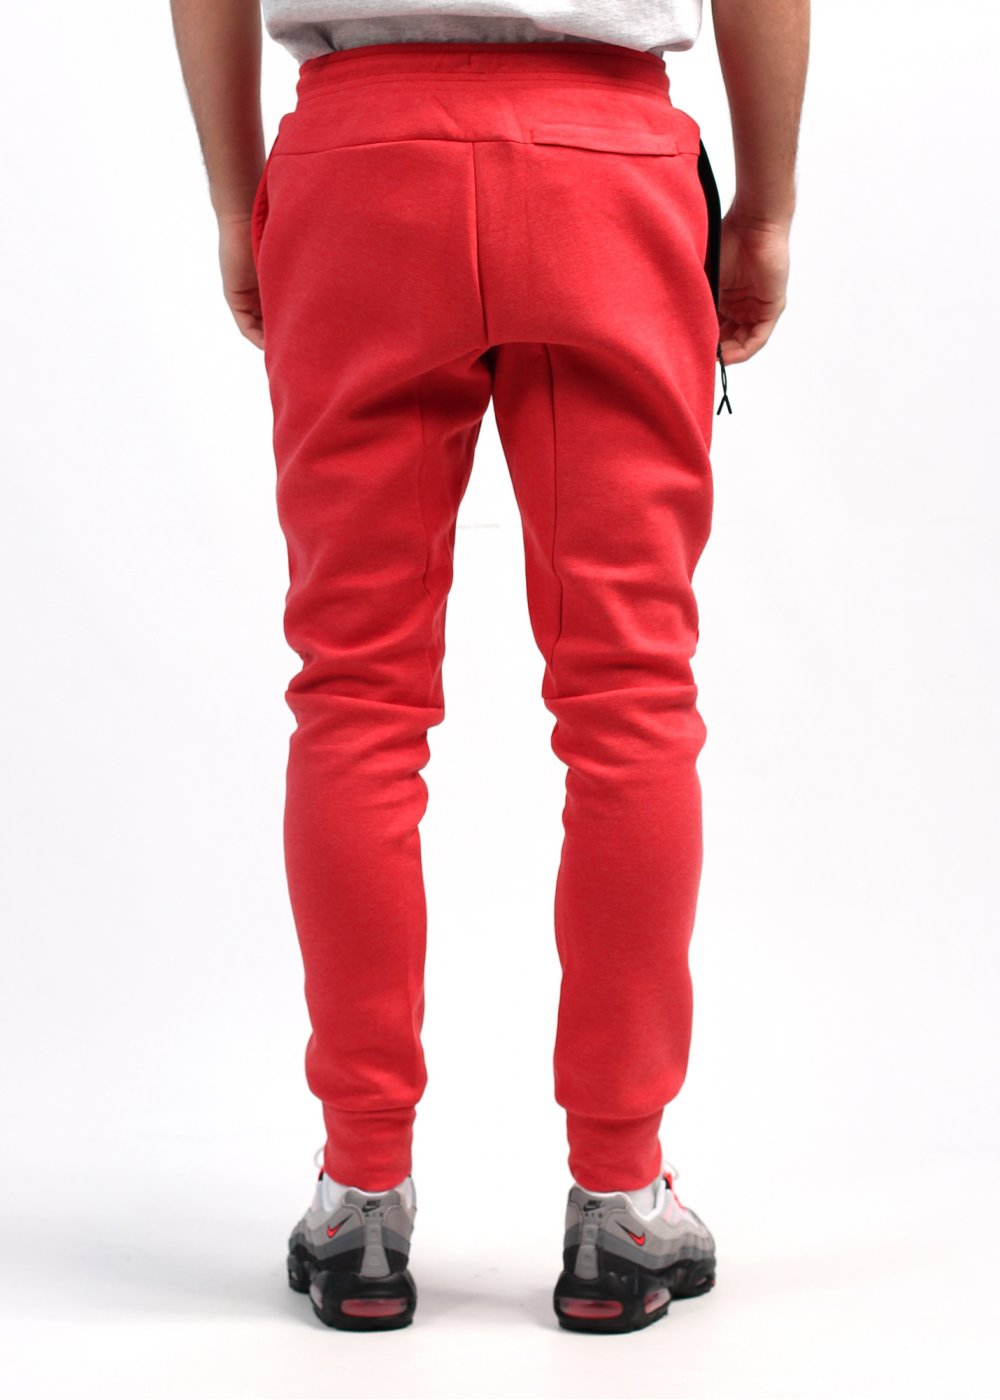 Excellent  Pants Nikes Jogger Pants Men S Nikes Clothing Styles For Men S 2014